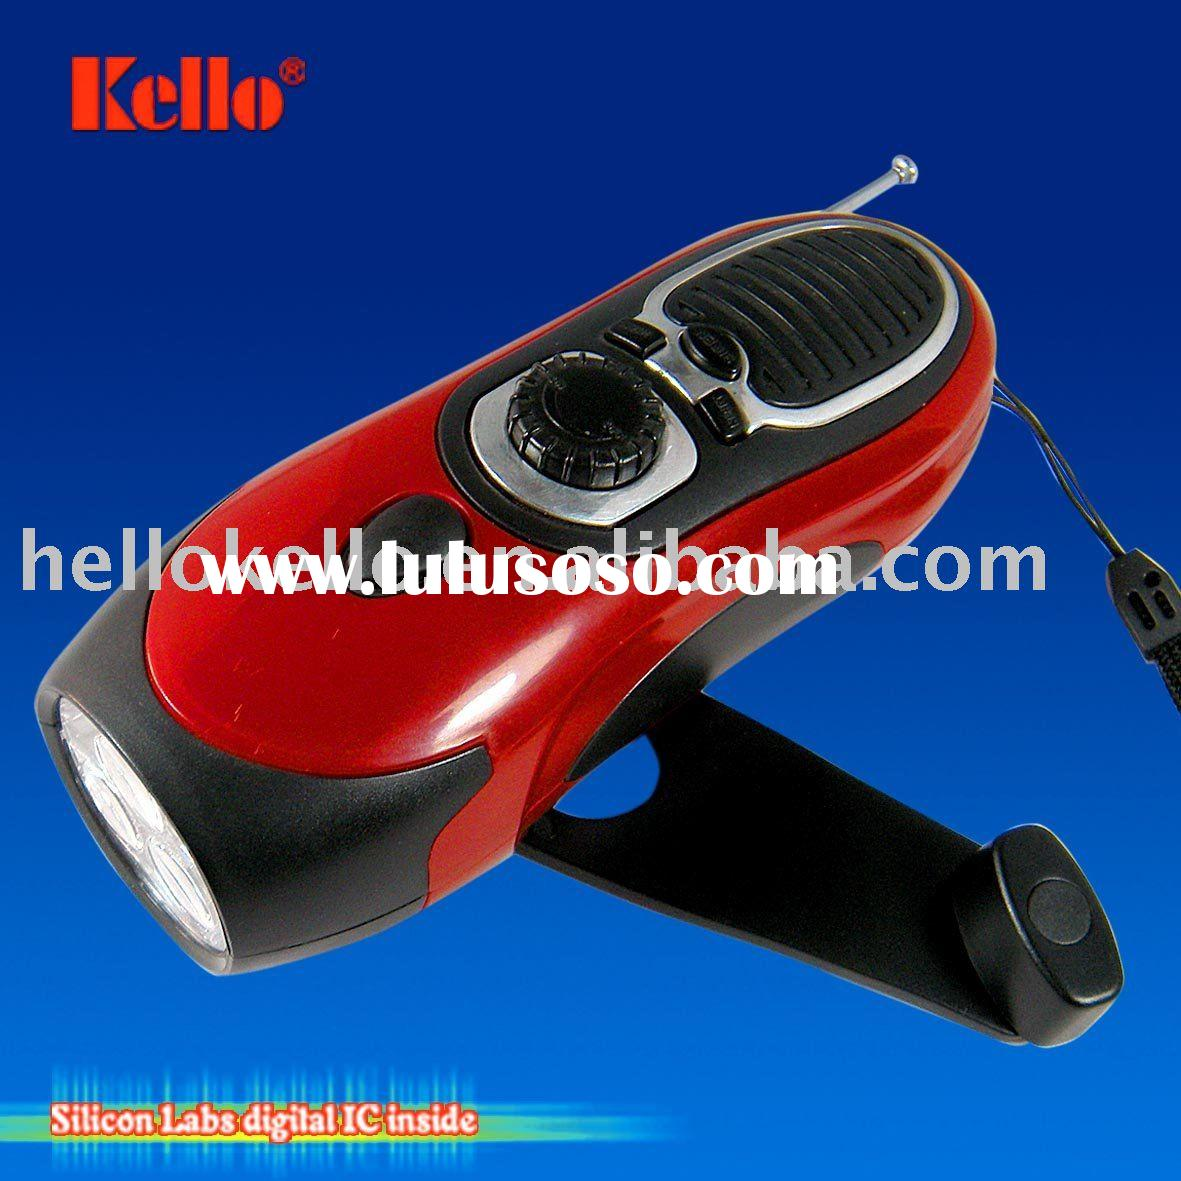 Dynamo LED flashlight, Dynamo cranking radio torch, Torch lamp, Winding up radio